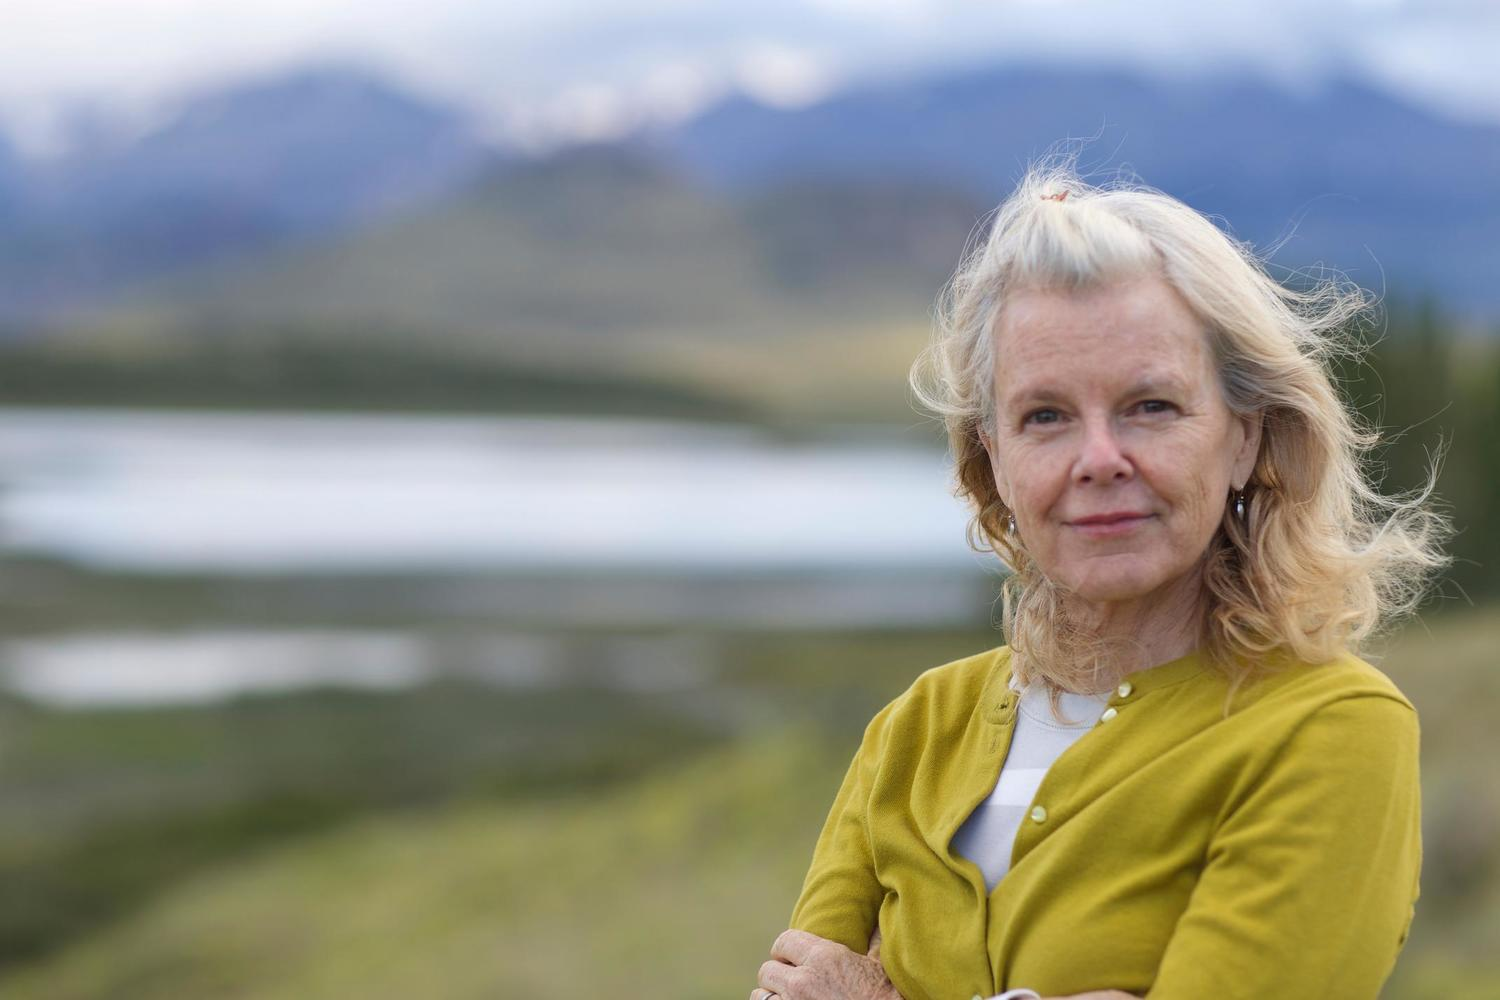 Kris Tompkins, UN Patron of Protected Areas and President of Tompkins Conservation